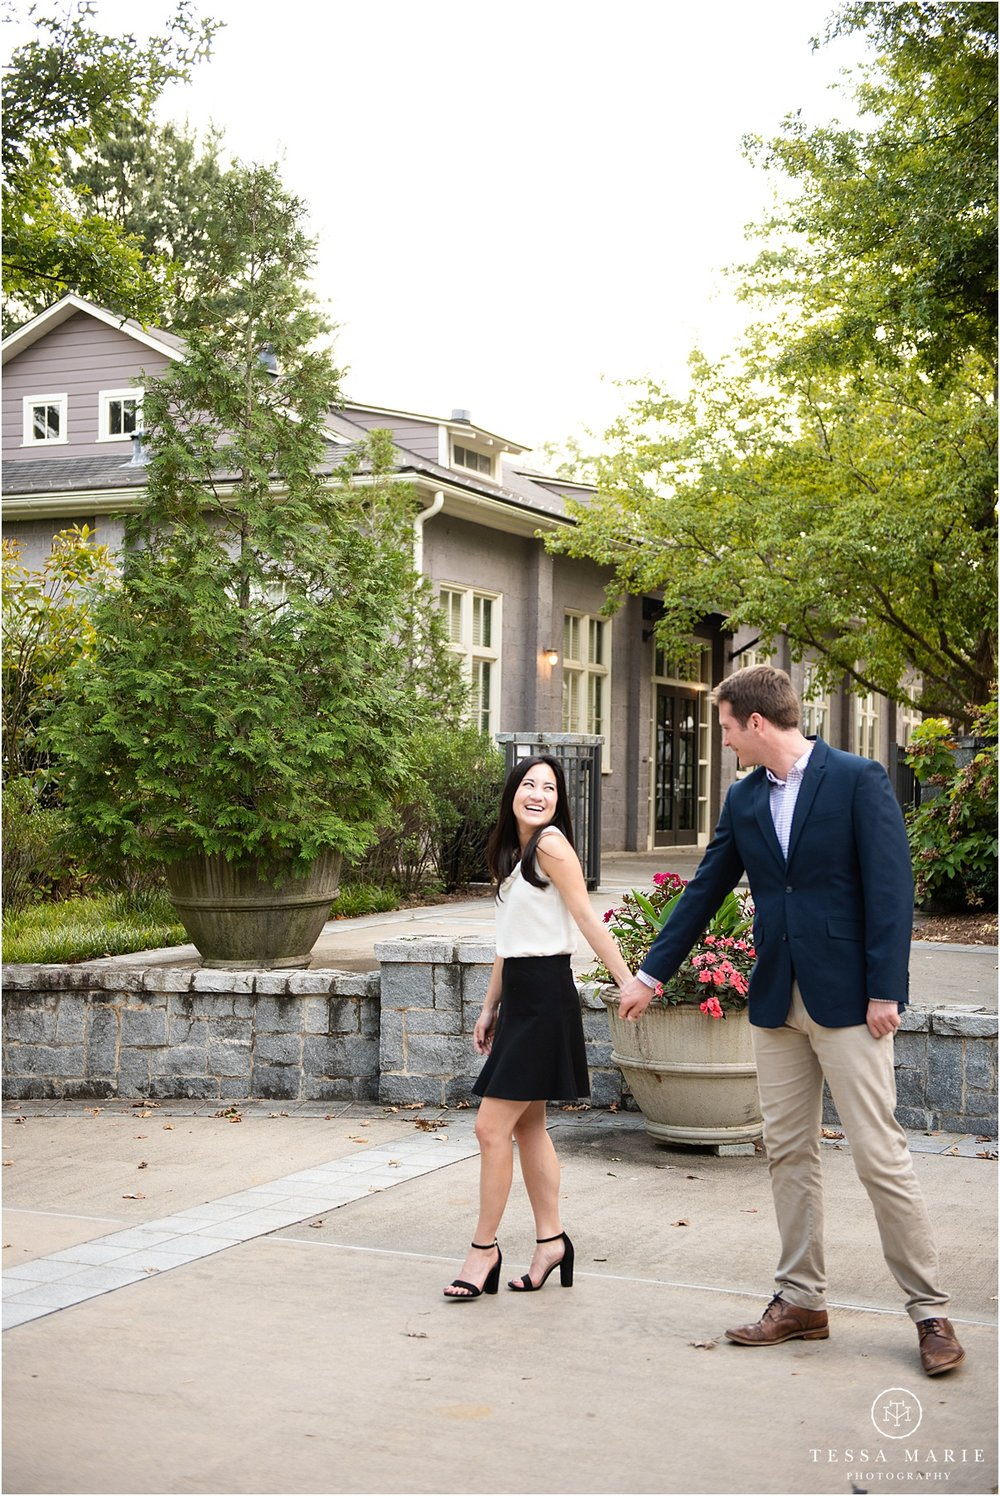 Tessa_marie_photography_wedding_photographer_engagement_pictures_piedmont_park_0061.jpg